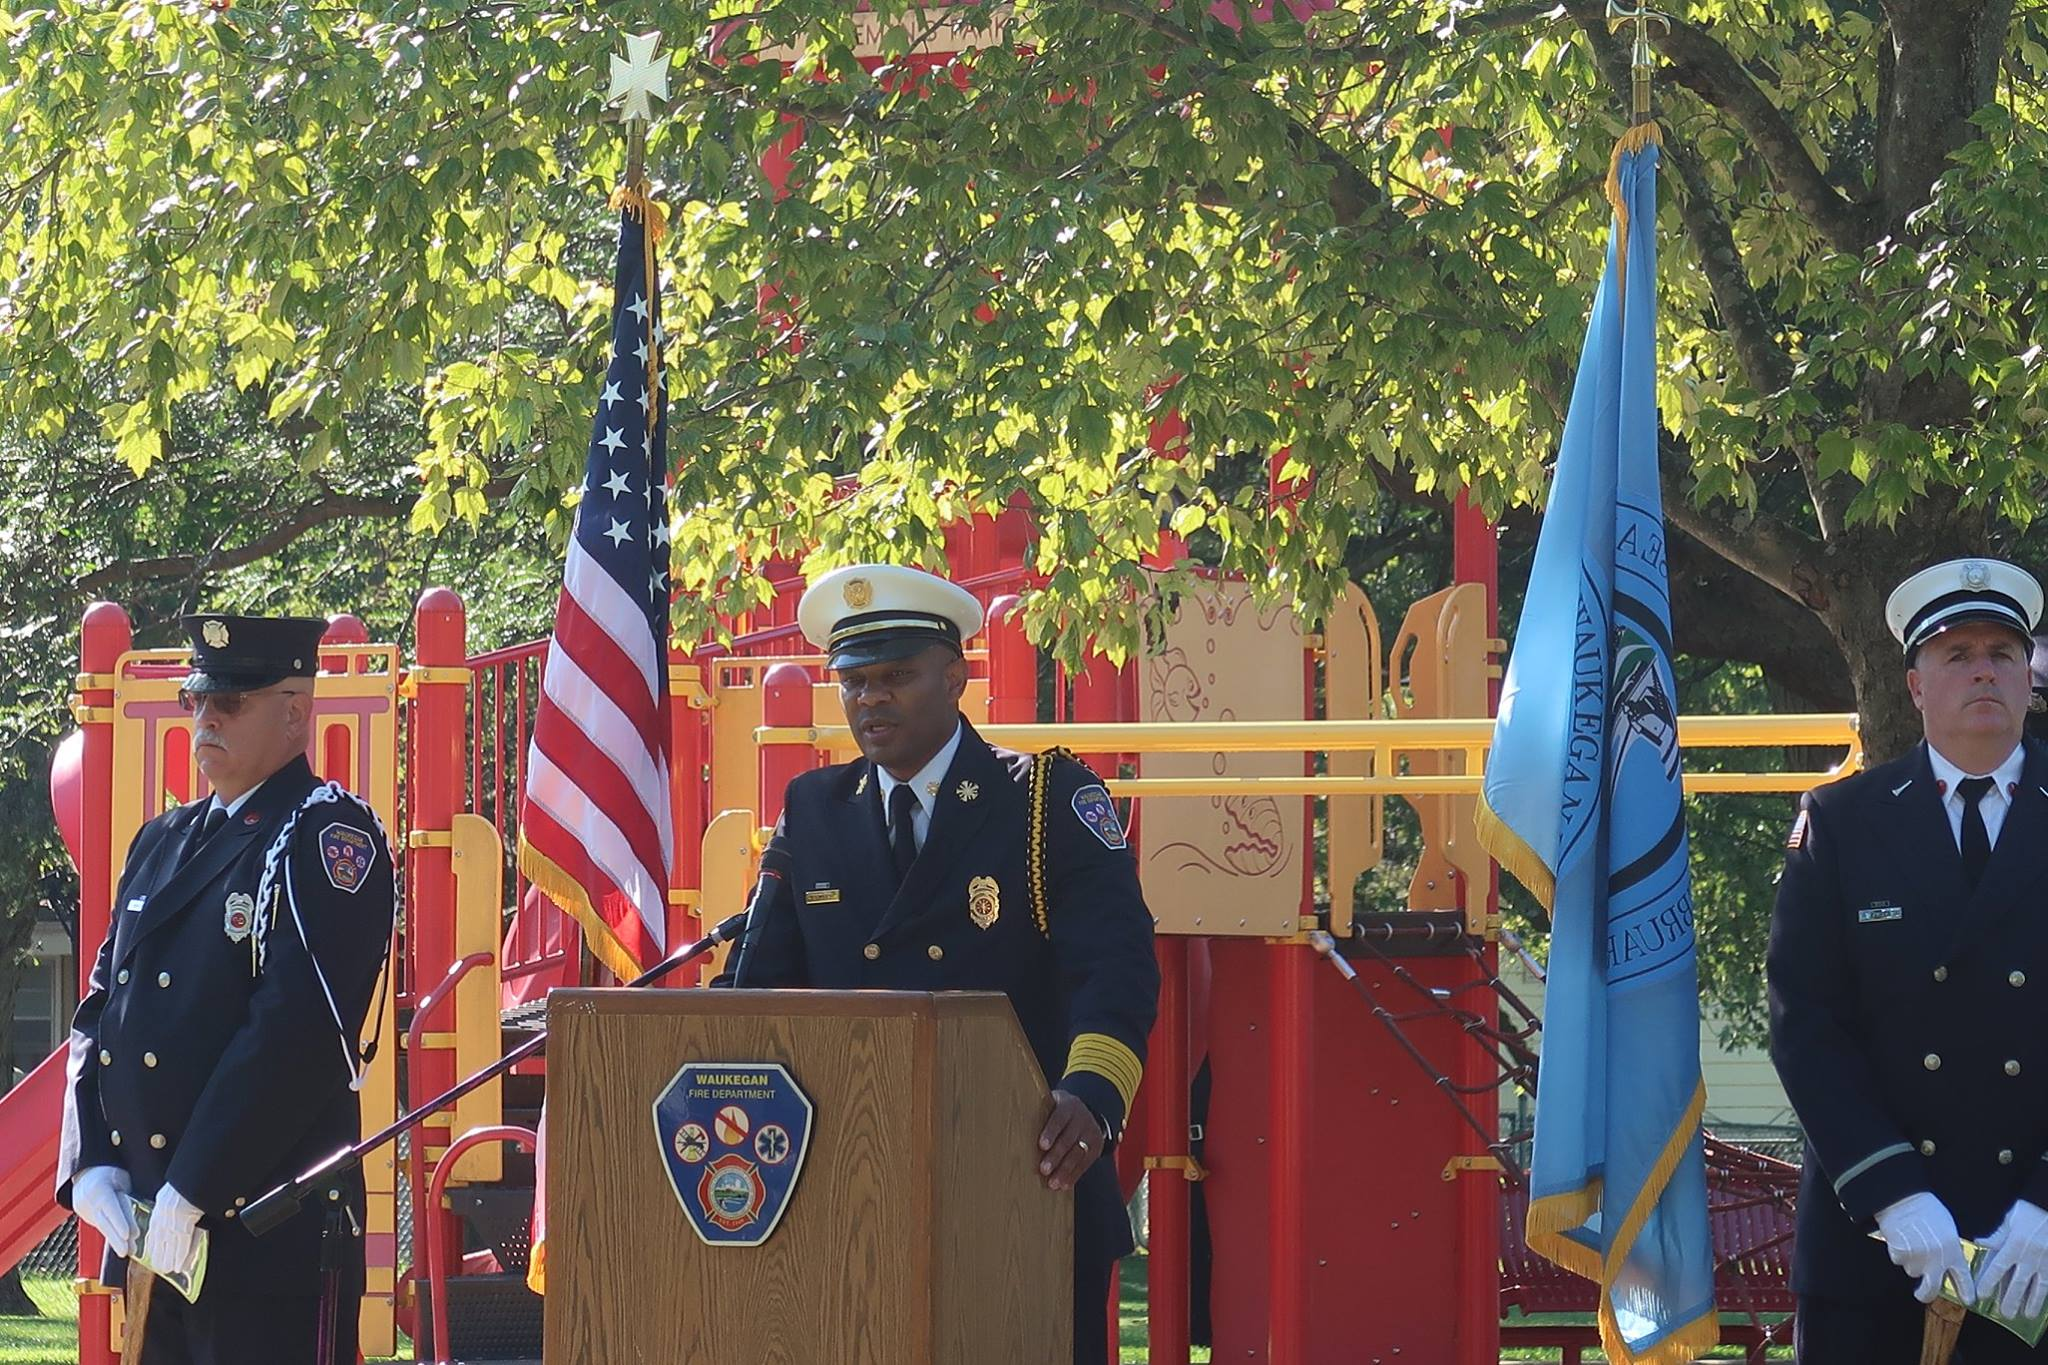 Fire Chief Giving a Speech at a Podium